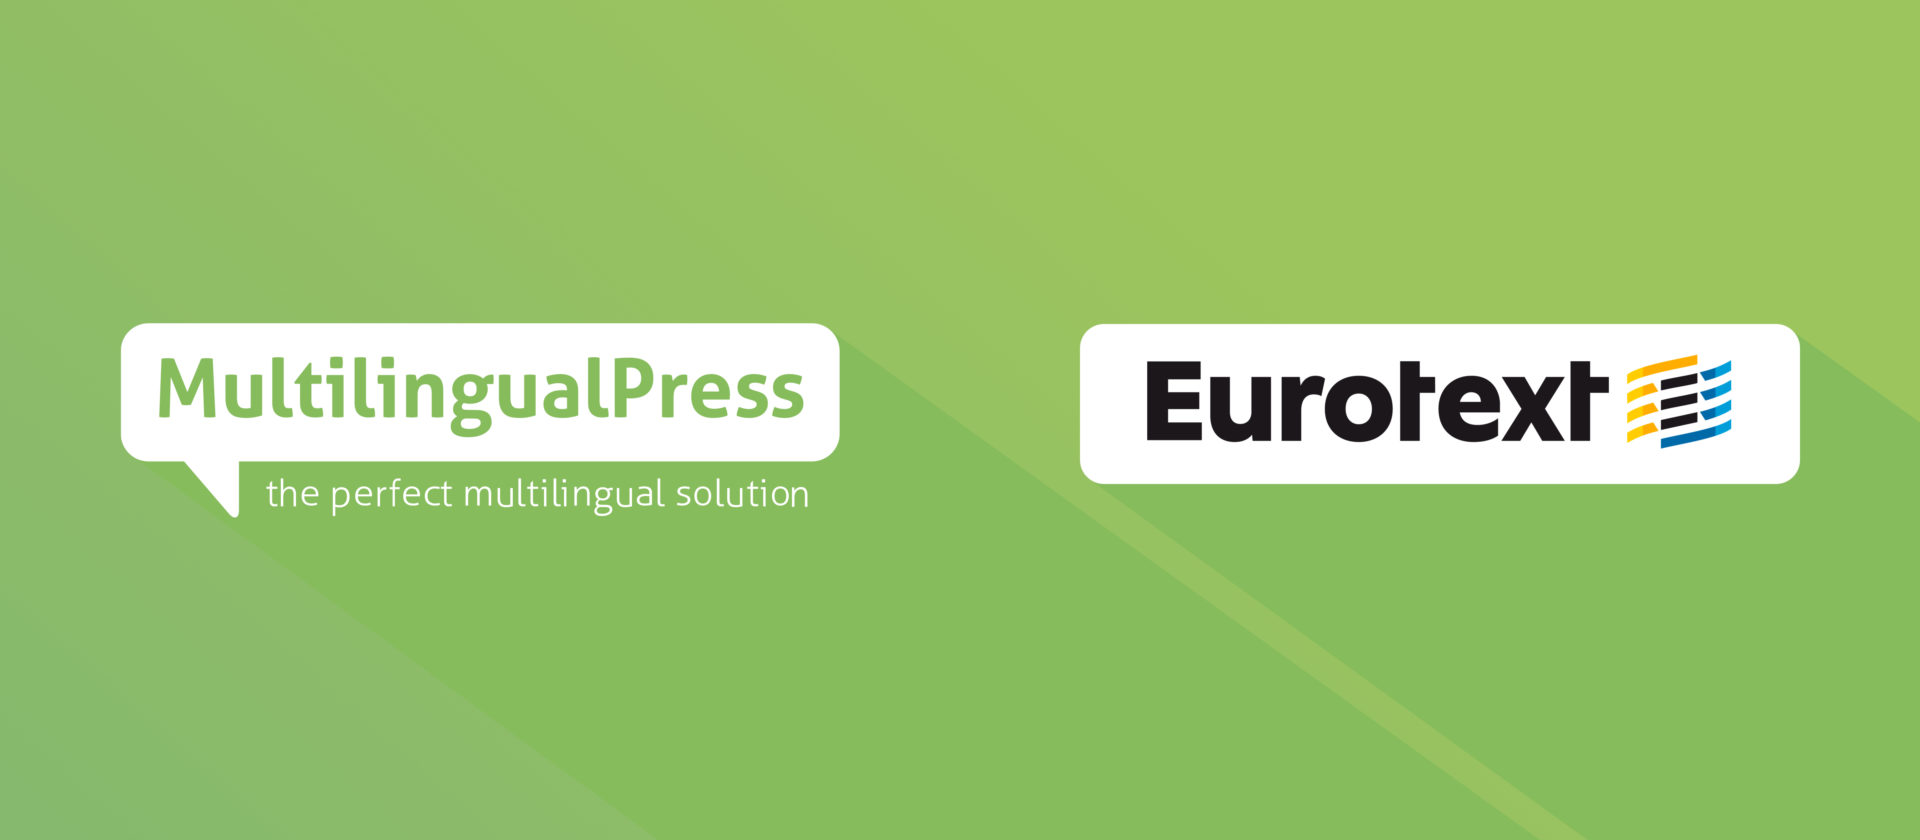 A multilingual web presence with WordPress is easy when having good partners.